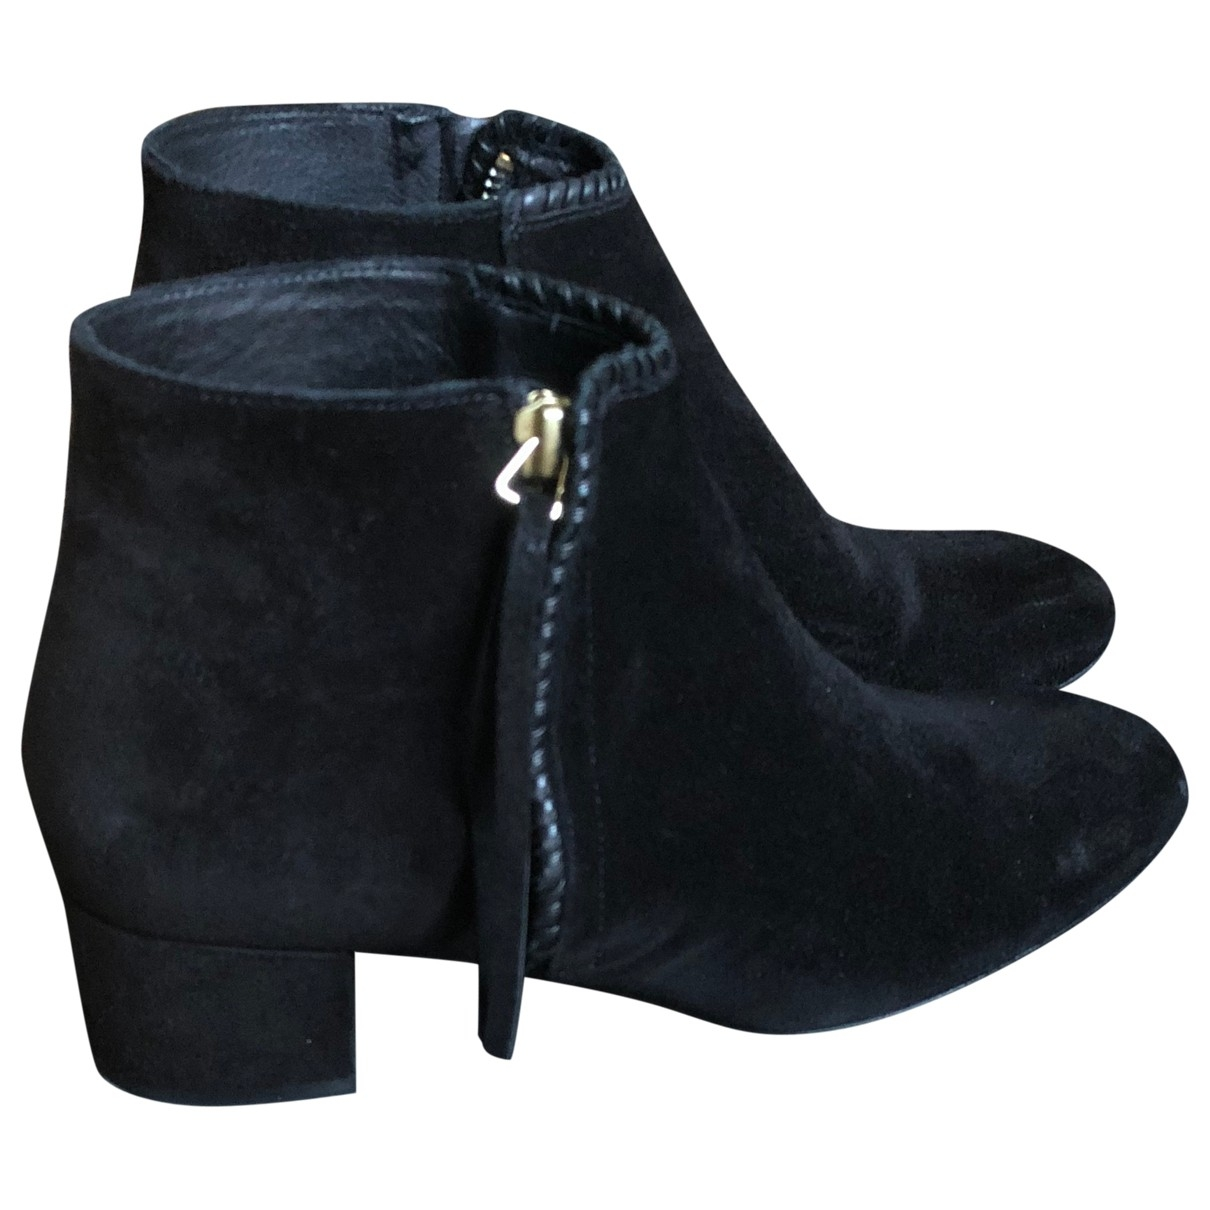 Maje \N Black Suede Ankle boots for Women 37 EU